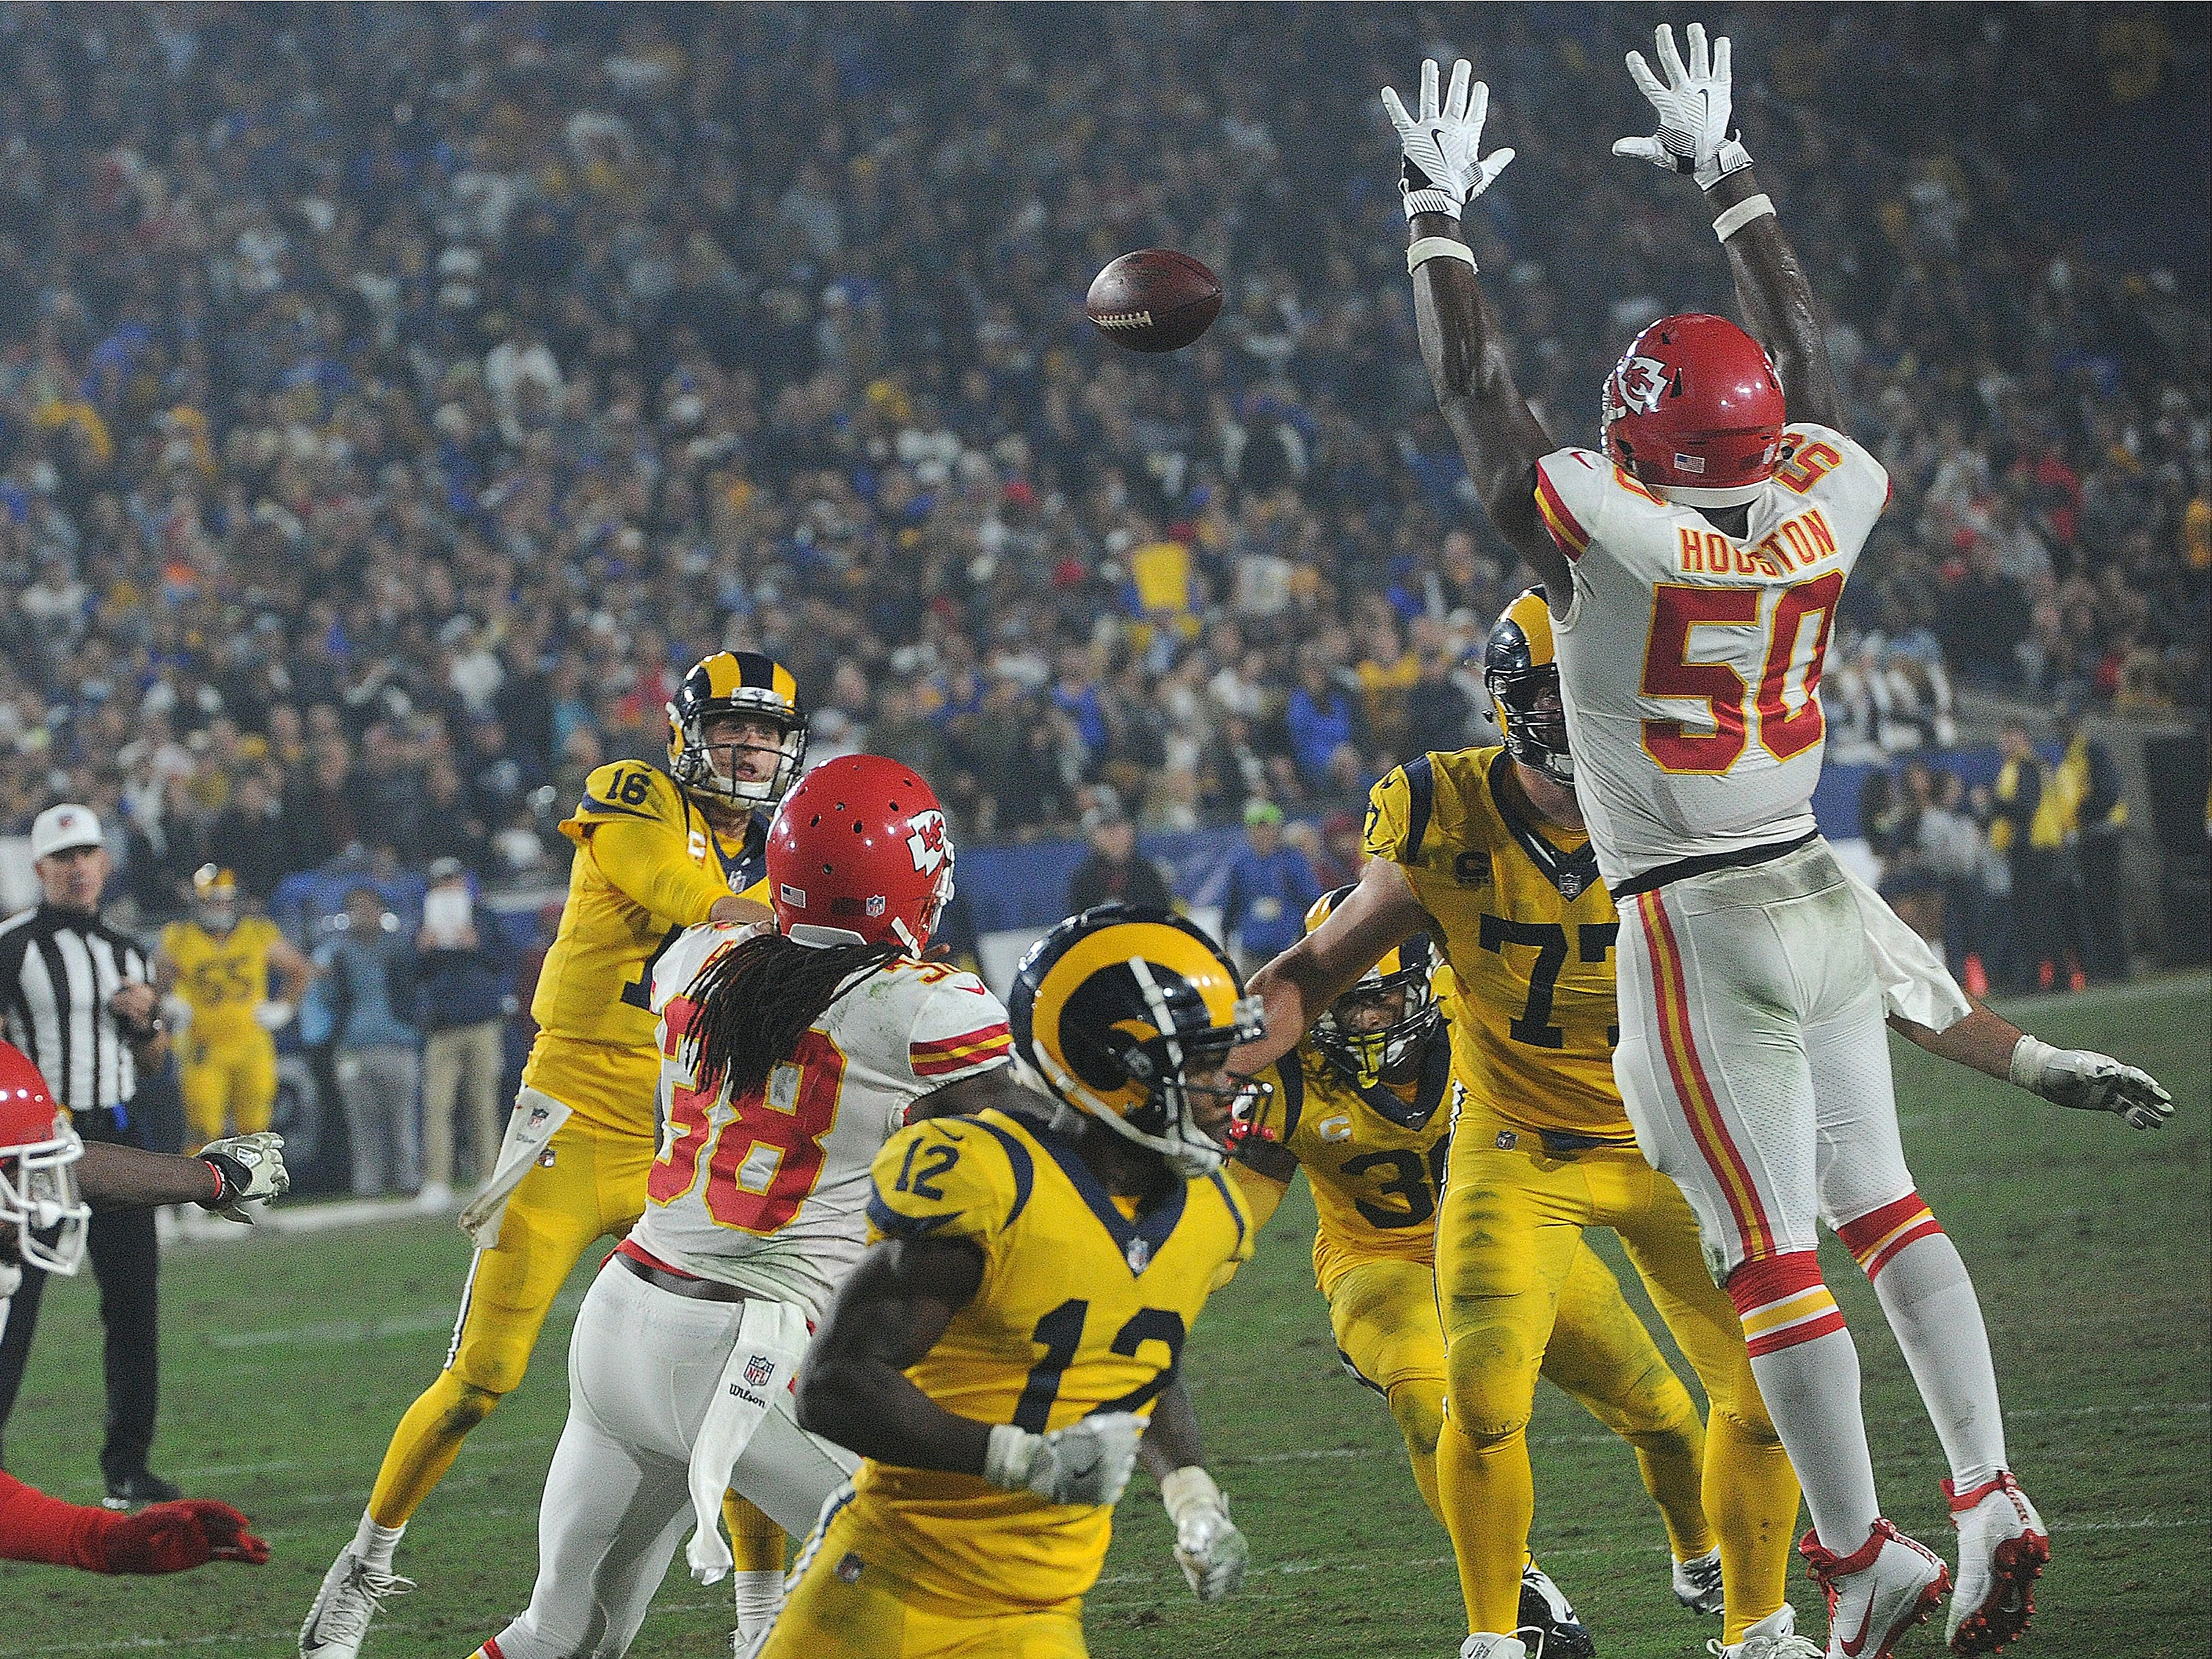 Rams quarterback Jared Goff throws a pass against the Chiefs on Monday night. Goff completed 31 of 49 passes for 413 yards and four touchdowns and ran for another in a record breaking 54-51 epic battle with the Chiefs on Monday night.